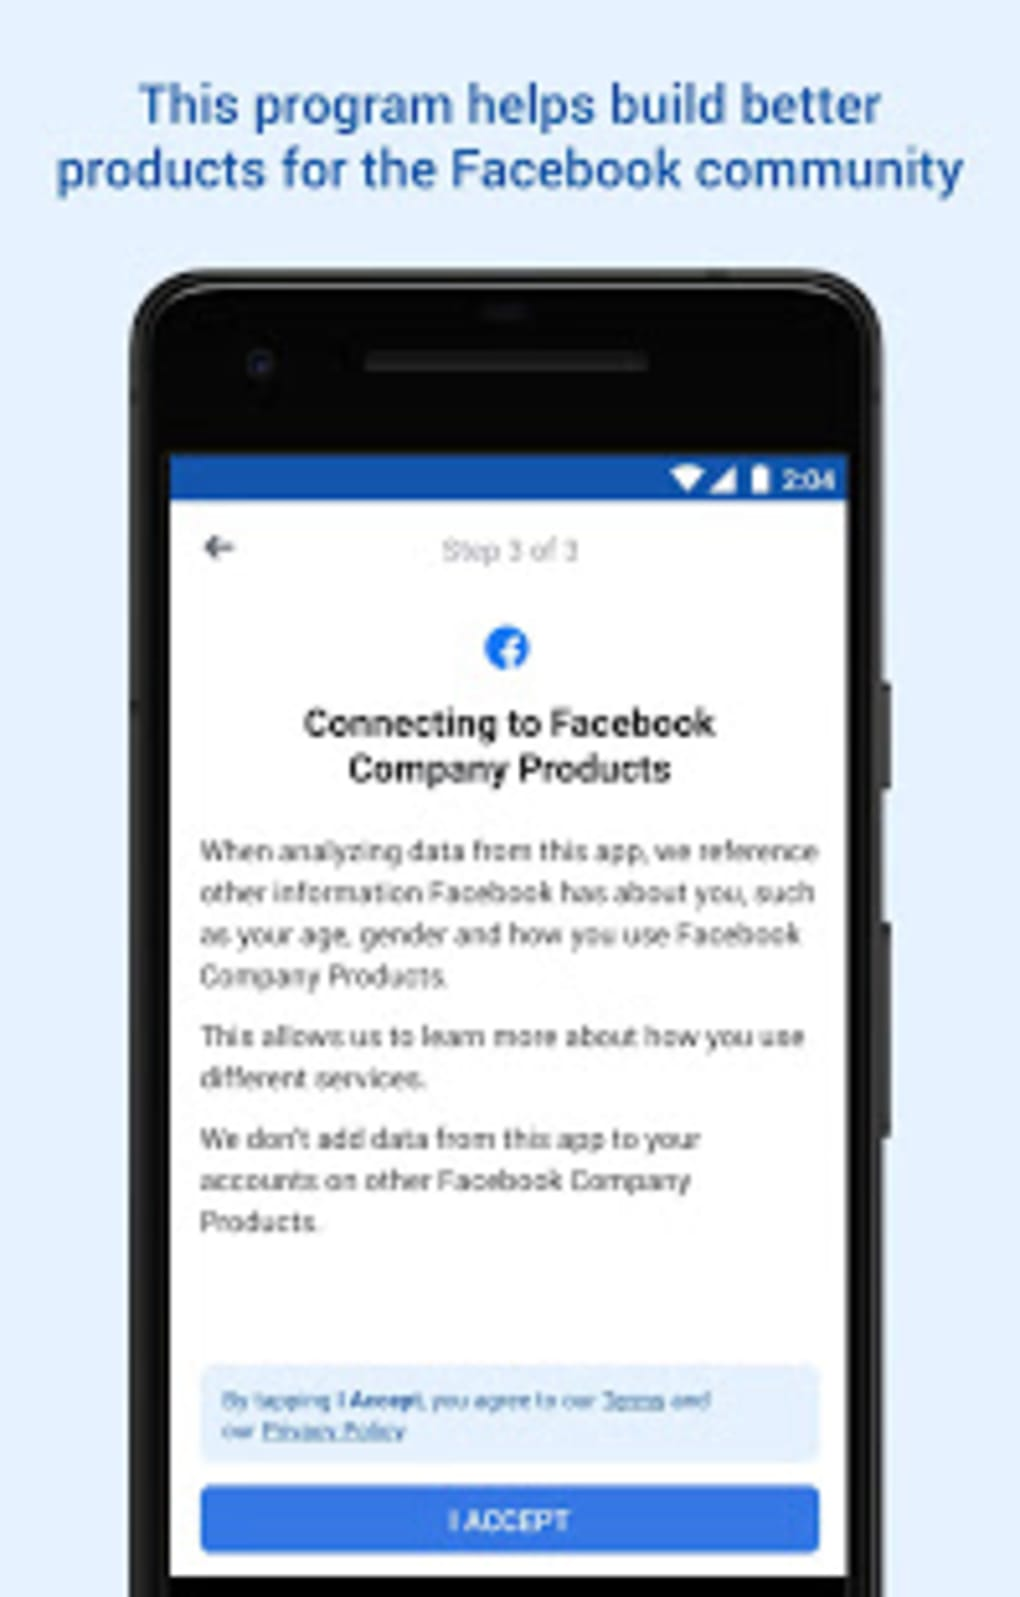 Study from Facebook for Android - Download